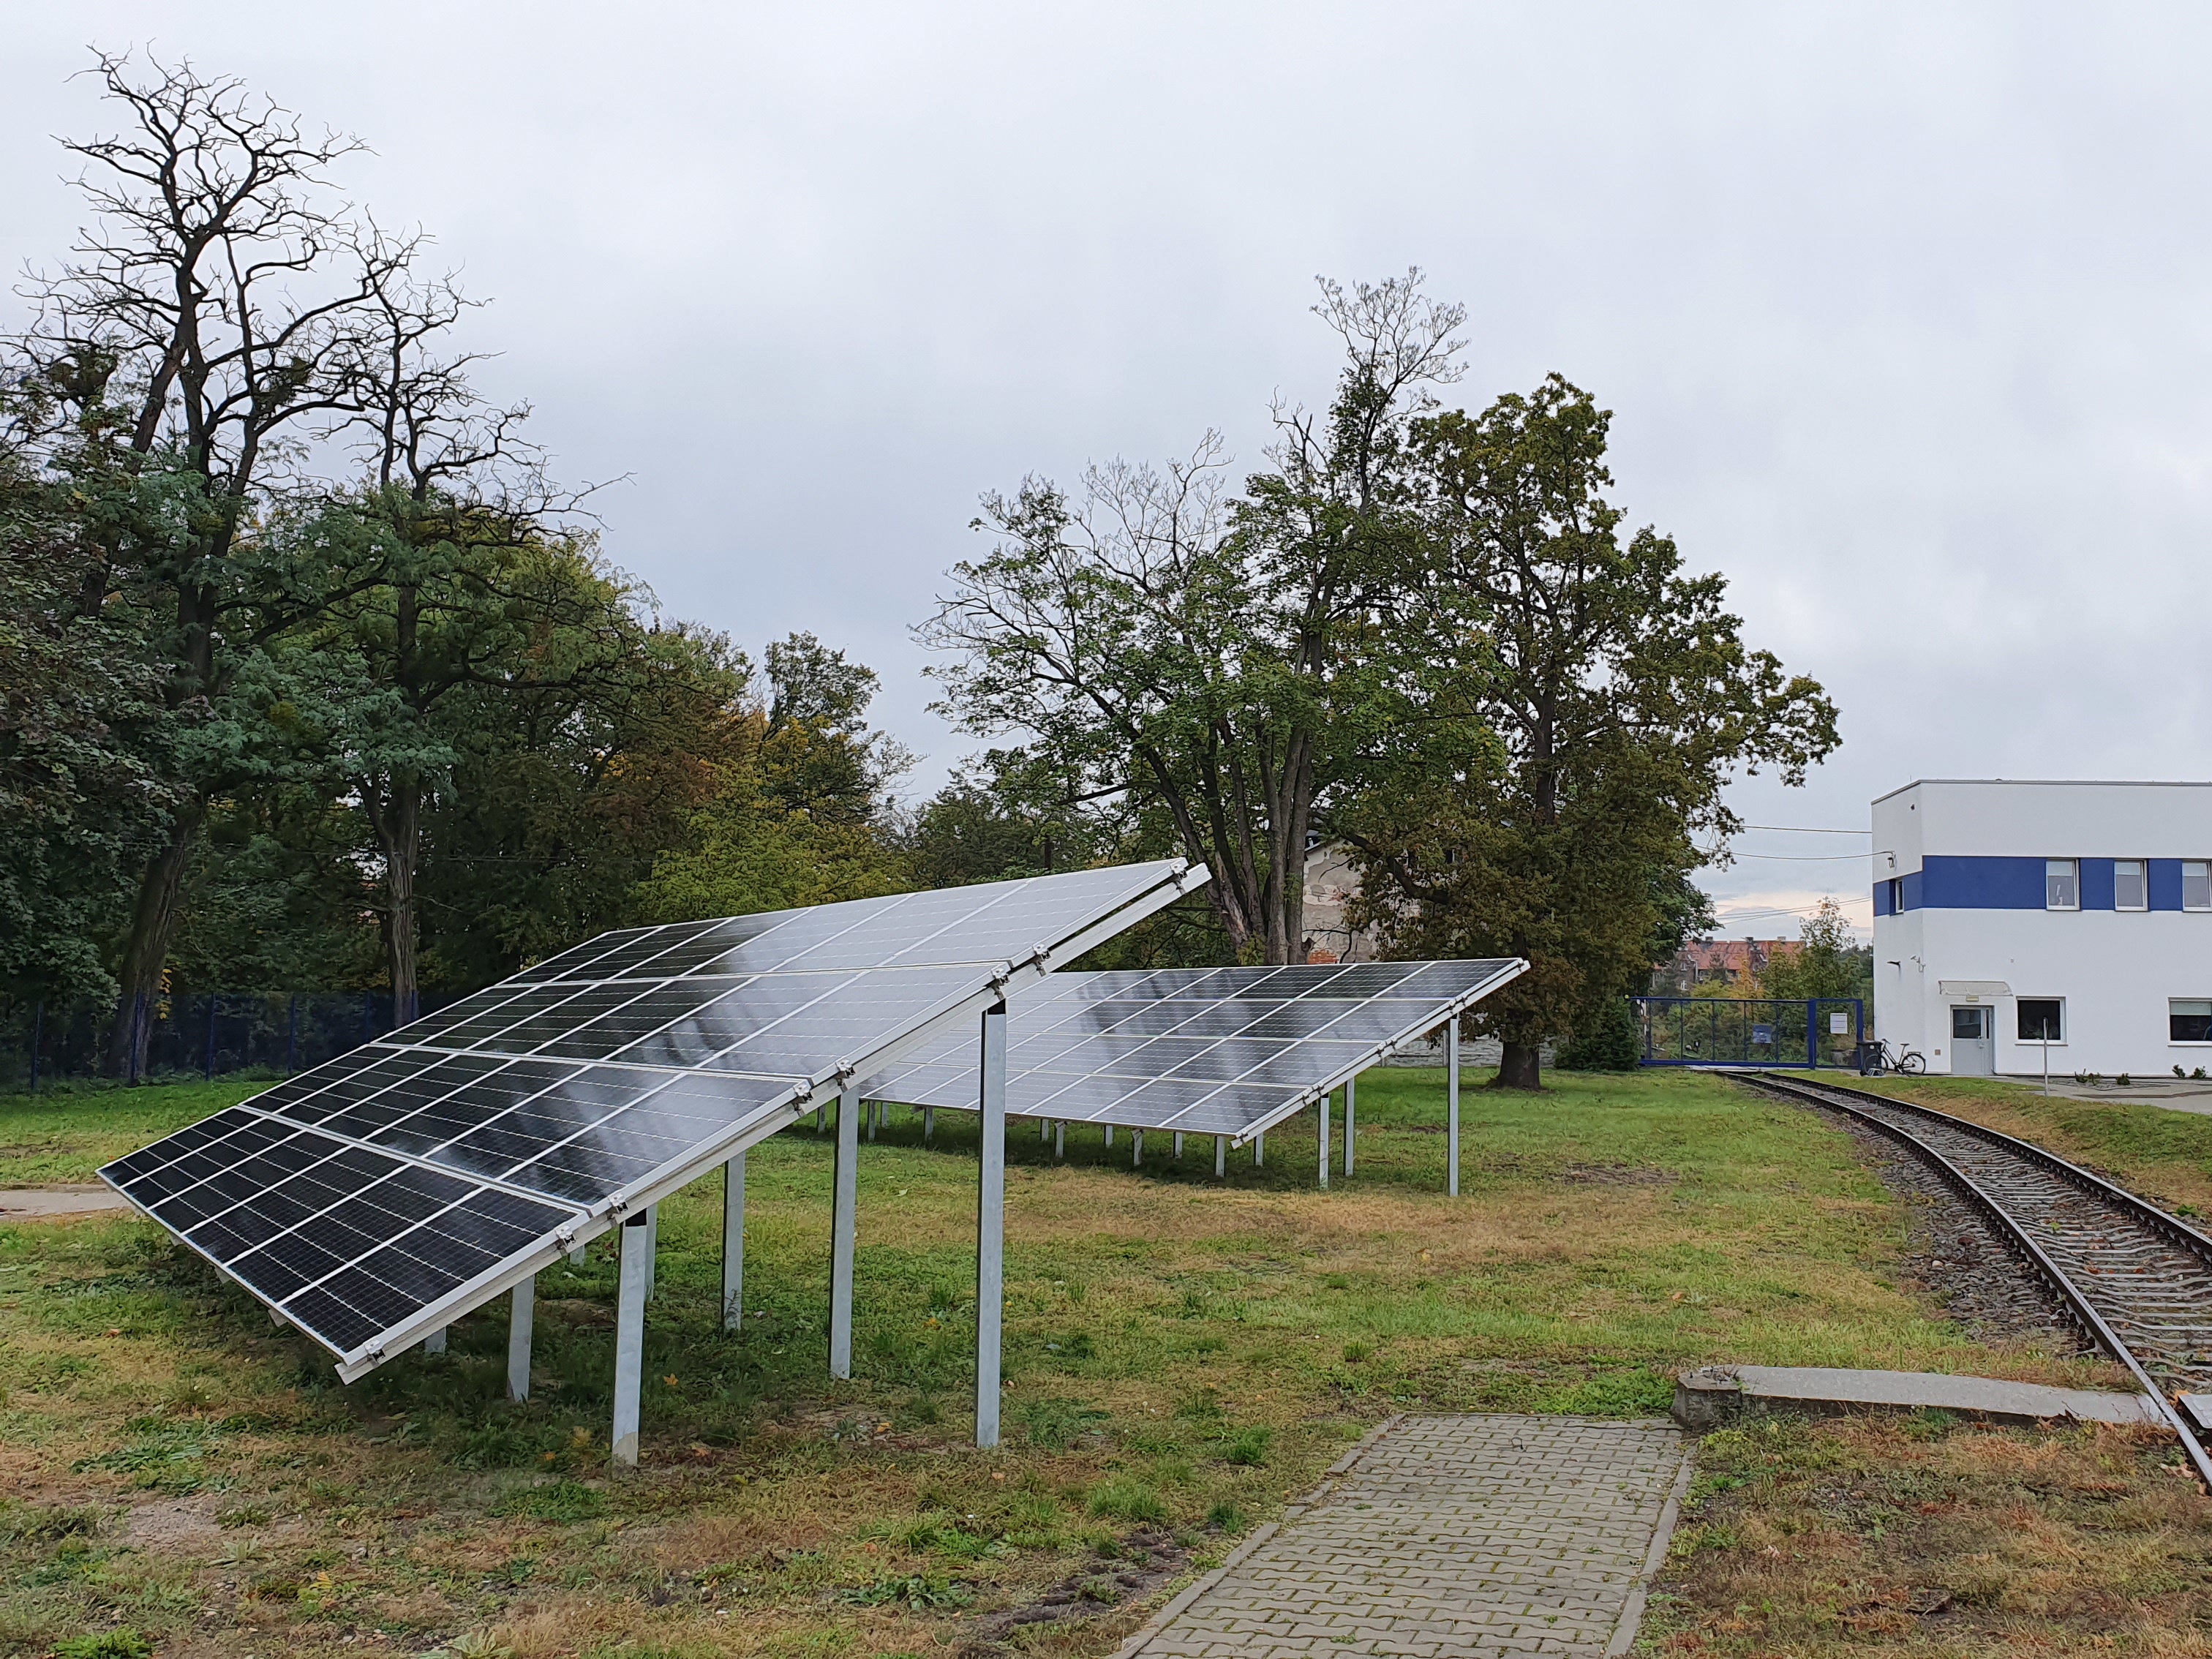 A 20 kWp ground installation oriented towards the south, mounted in Zawadzkie.